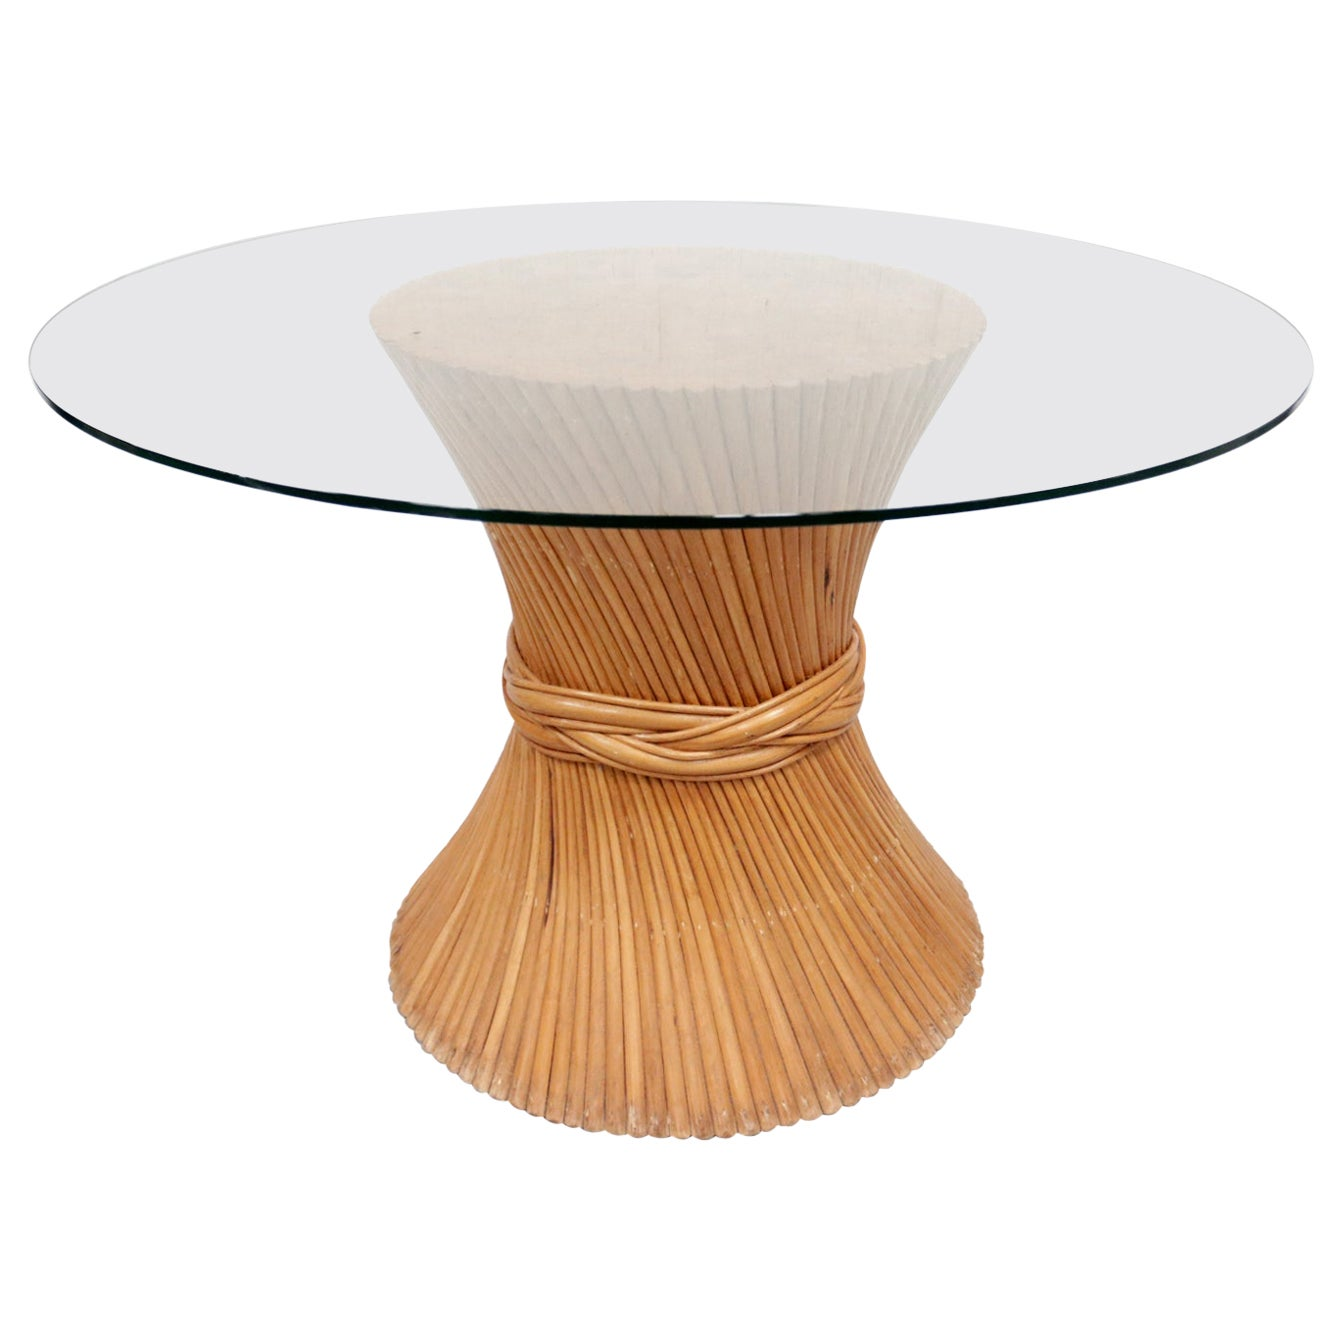 Hollywood Regency Wheat Sheaf Dining Table by McGuire